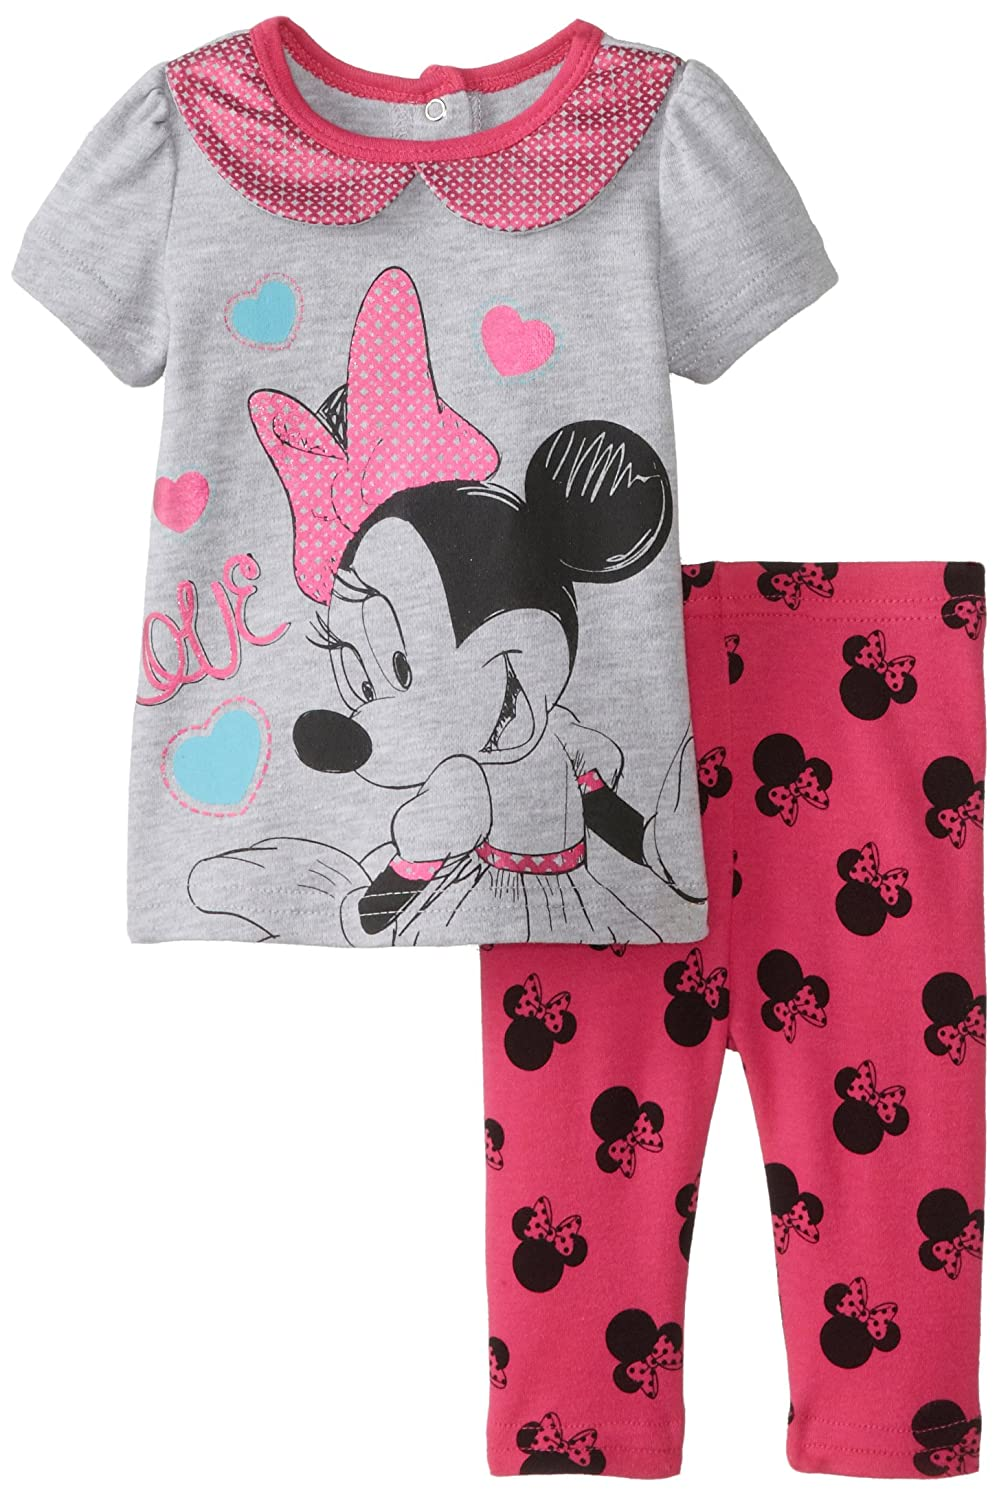 Disney Baby Baby-Girls Newborn 2 Piece Legging Set 0 12month baby girls